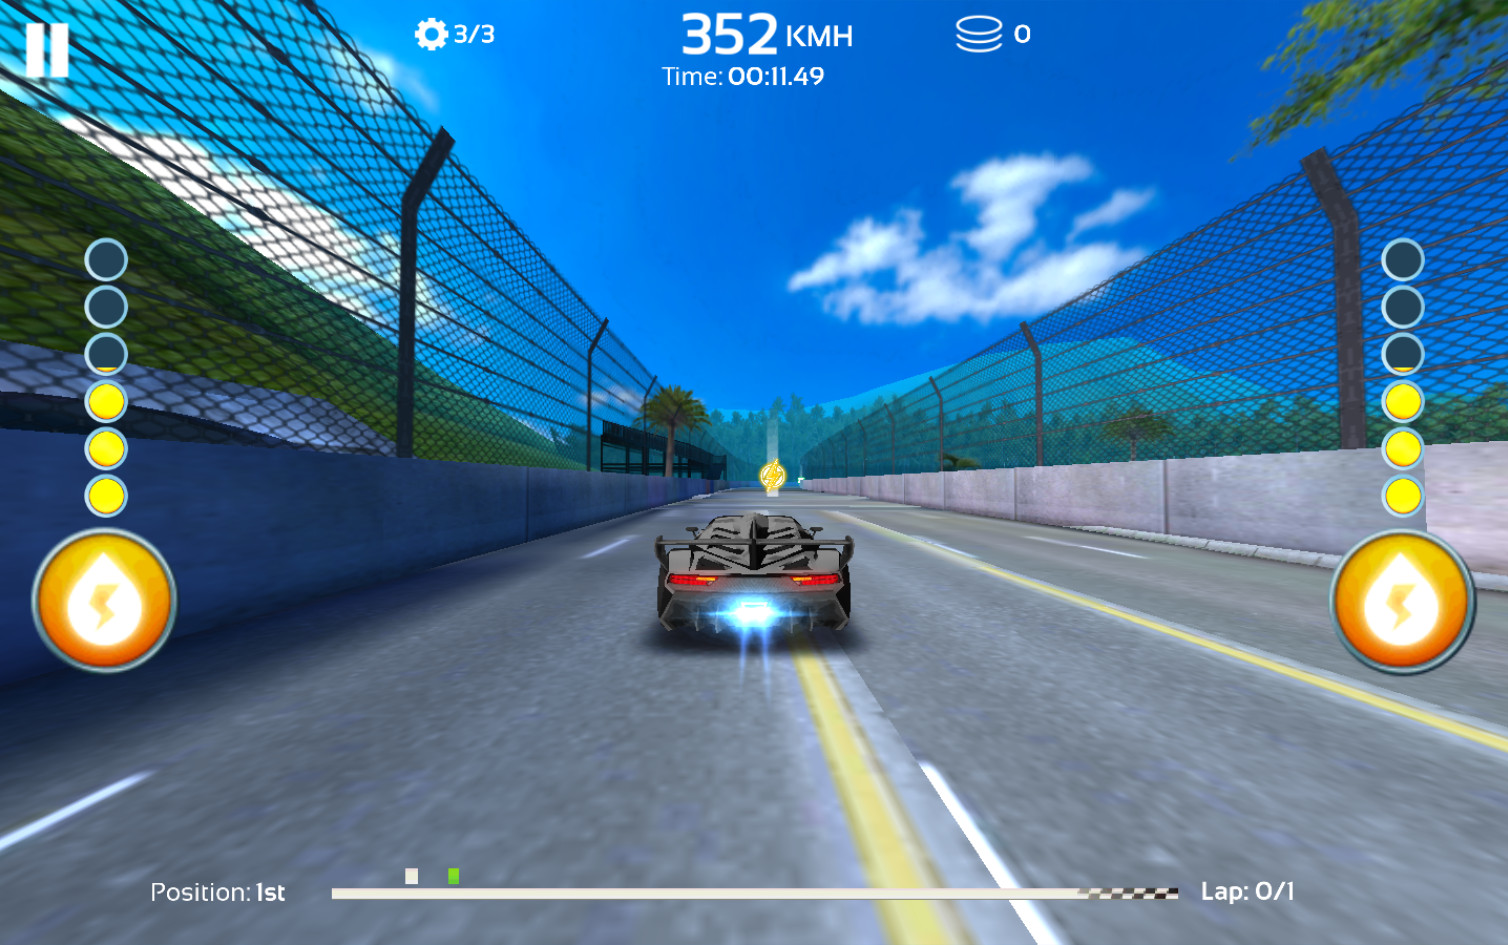 Free full Android games - Racing 3D: Extreme Furious Driver the race